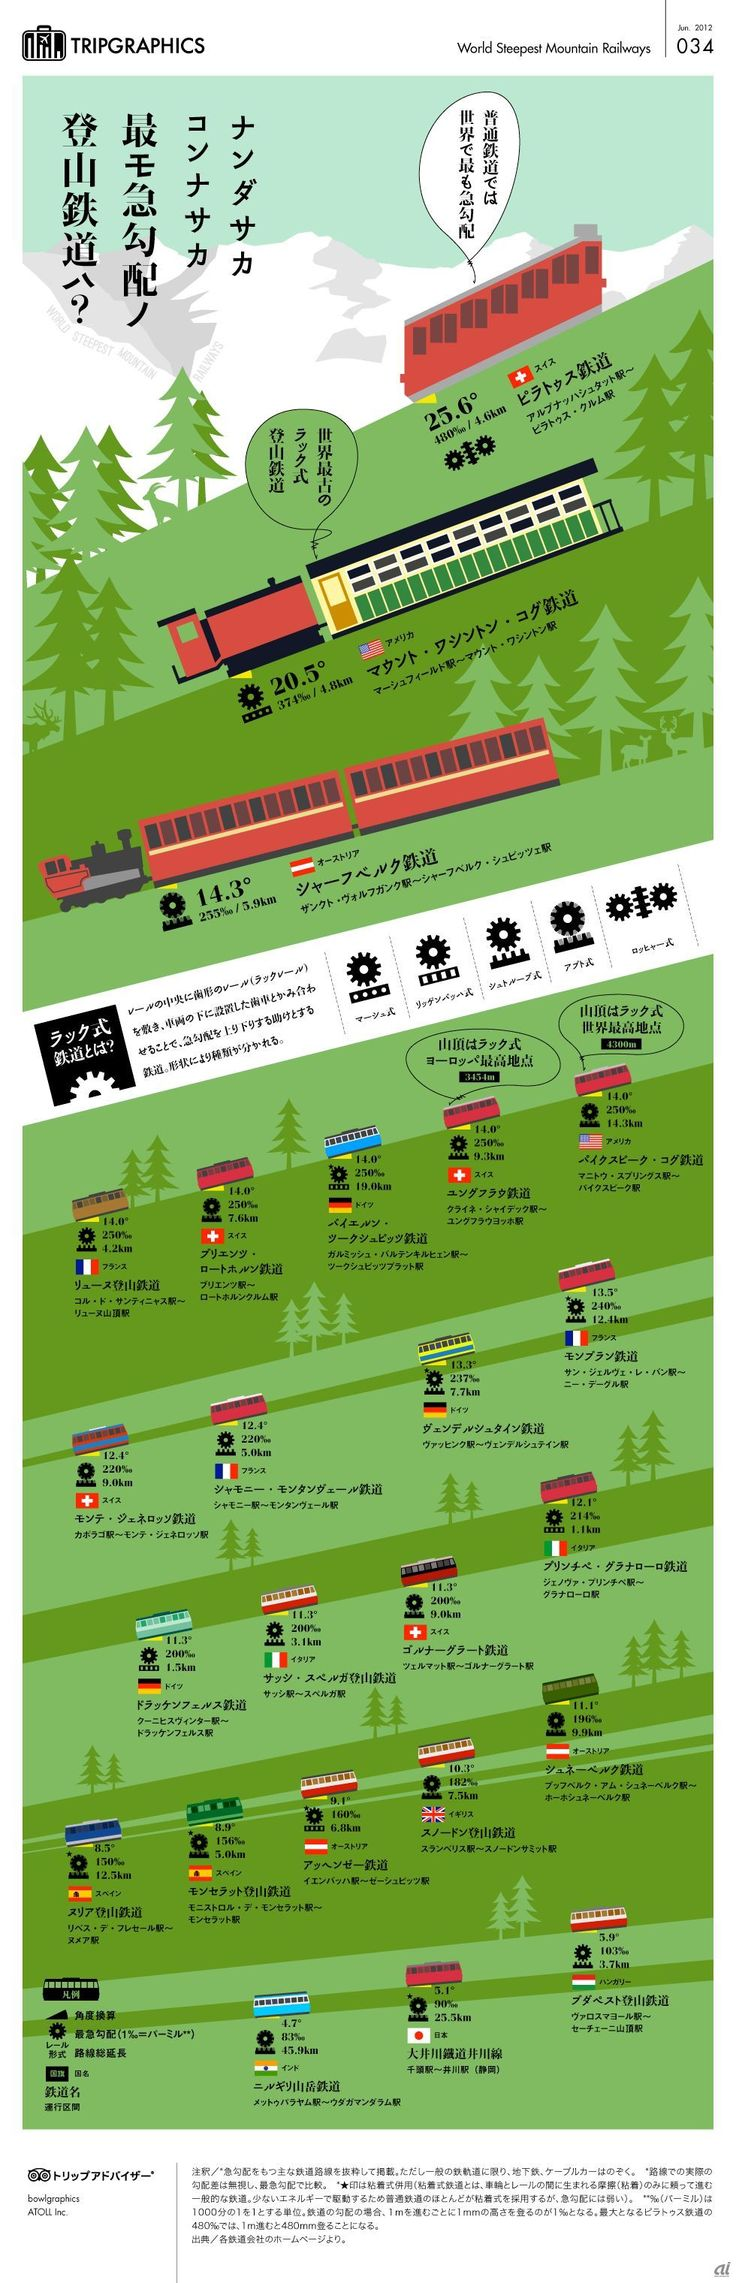 Mountain Railway in the world.